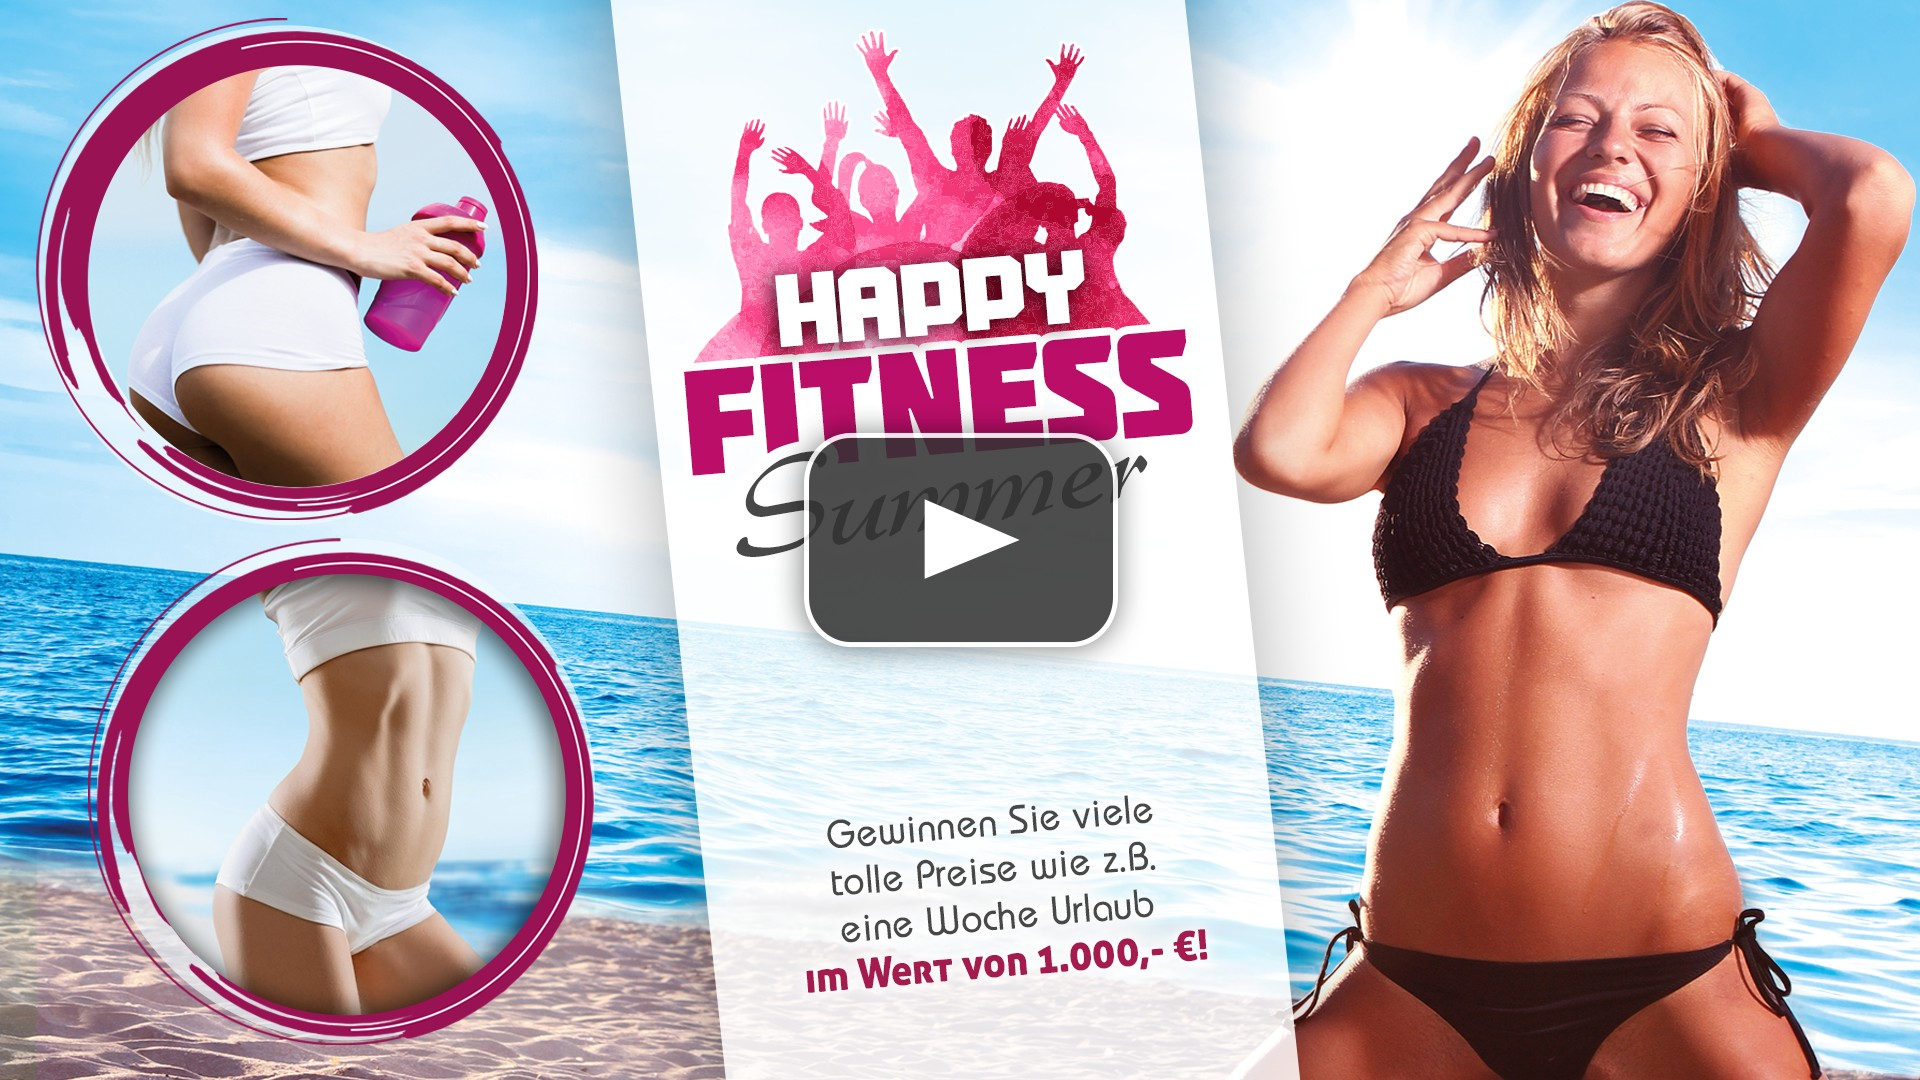 FIVE_Fitnesstreff_Veitsbronn_Werbe-Video_Startbild